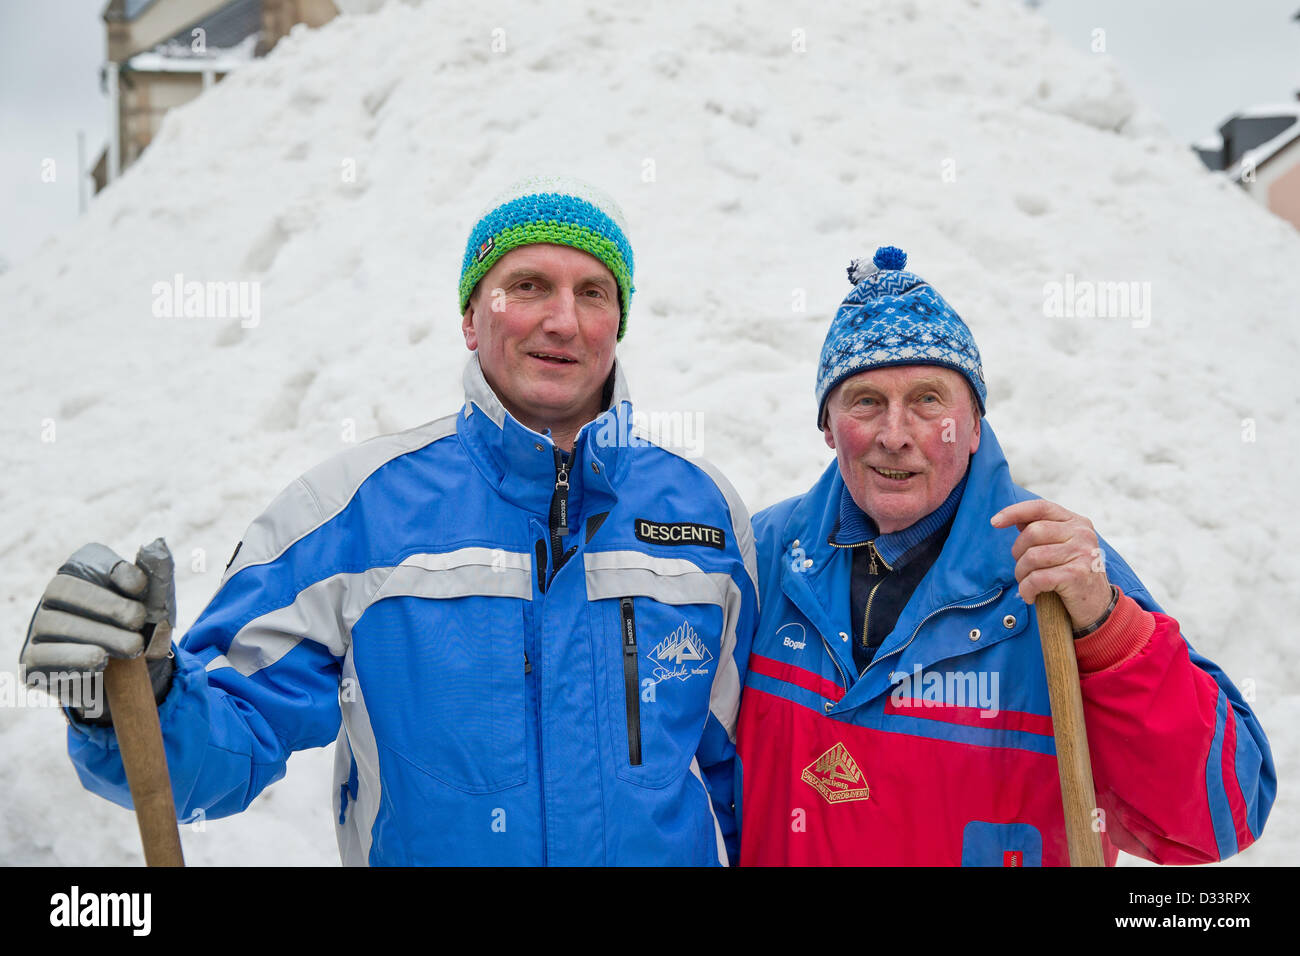 Bischofsgruen, Germany. 8th February 2013. Berndt (L) and Horst Heidenreich in front of 'Jacob', Germany's - Stock Image